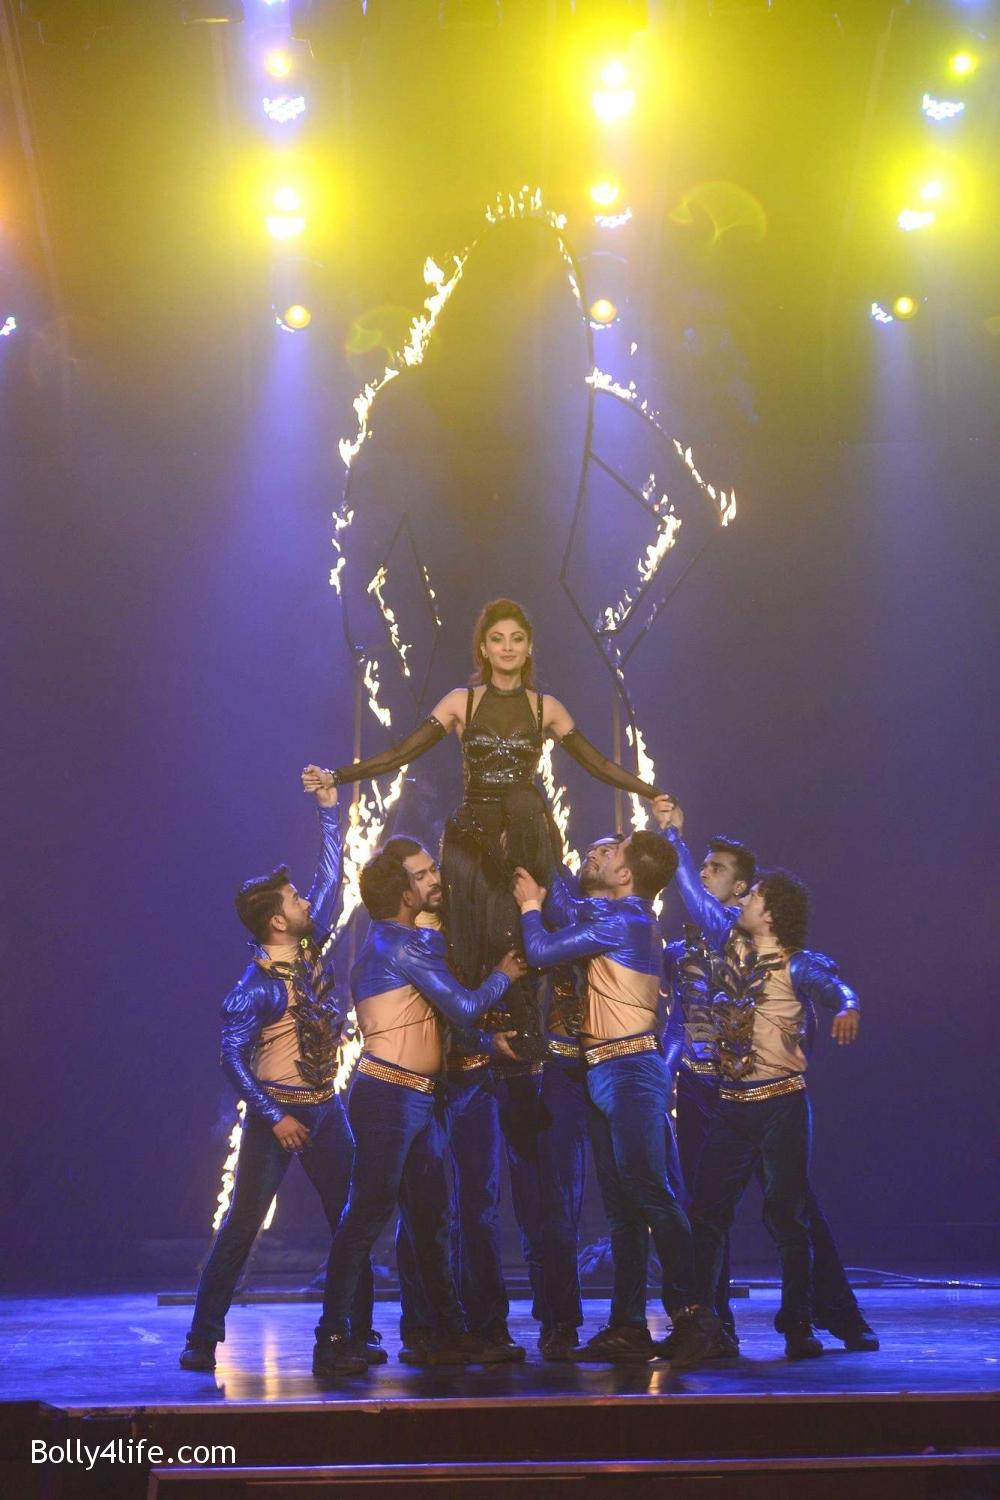 Shilpa-Shetty-perform-at-Sony-TV-reality-show-Super-Dancer-Finale-in-Mumbai-13.jpg